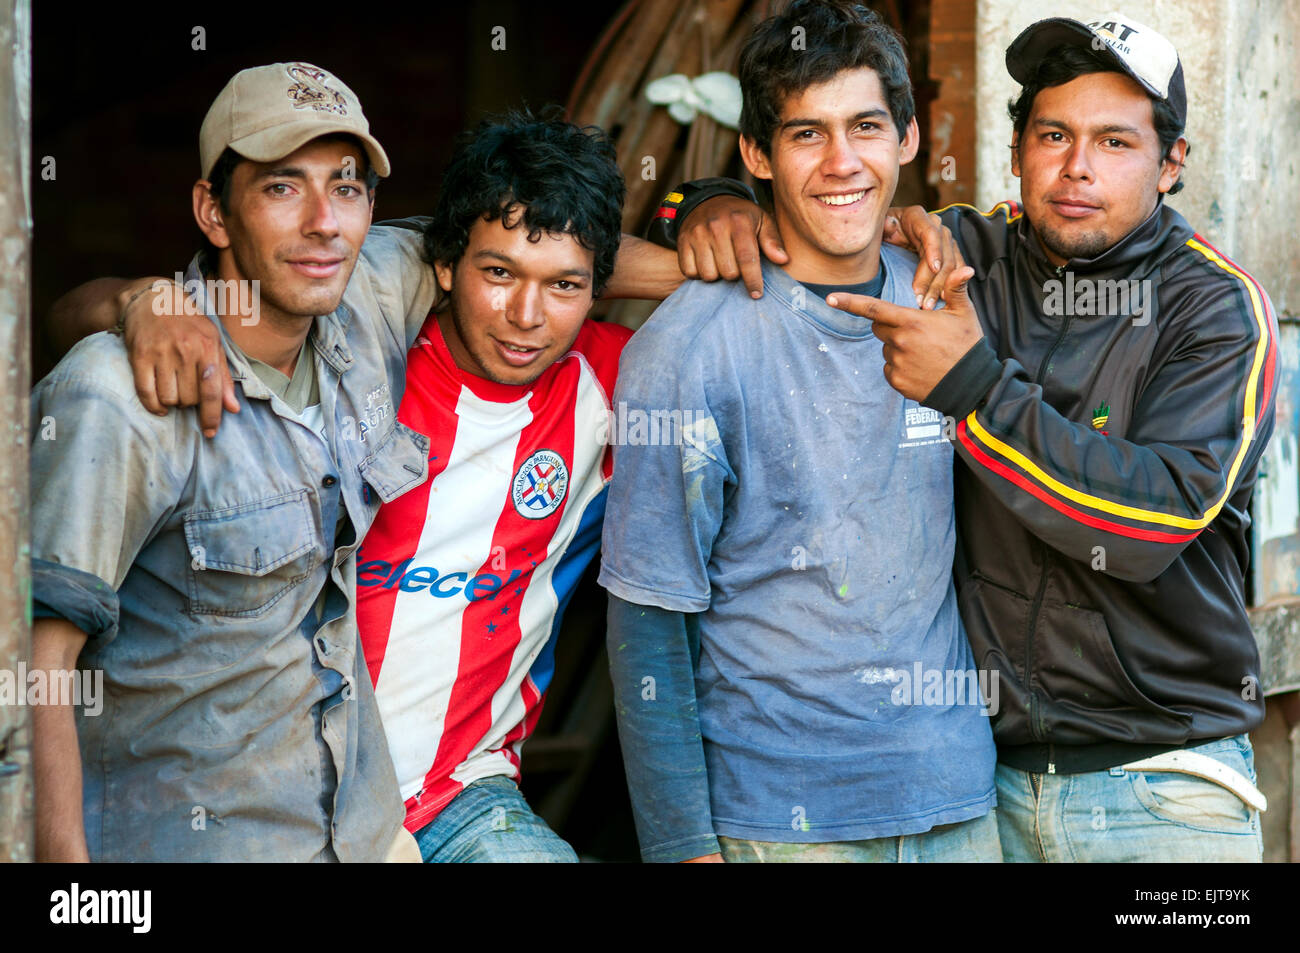 Male factory workers on break, Encarnacion, Paraguay - Stock Image